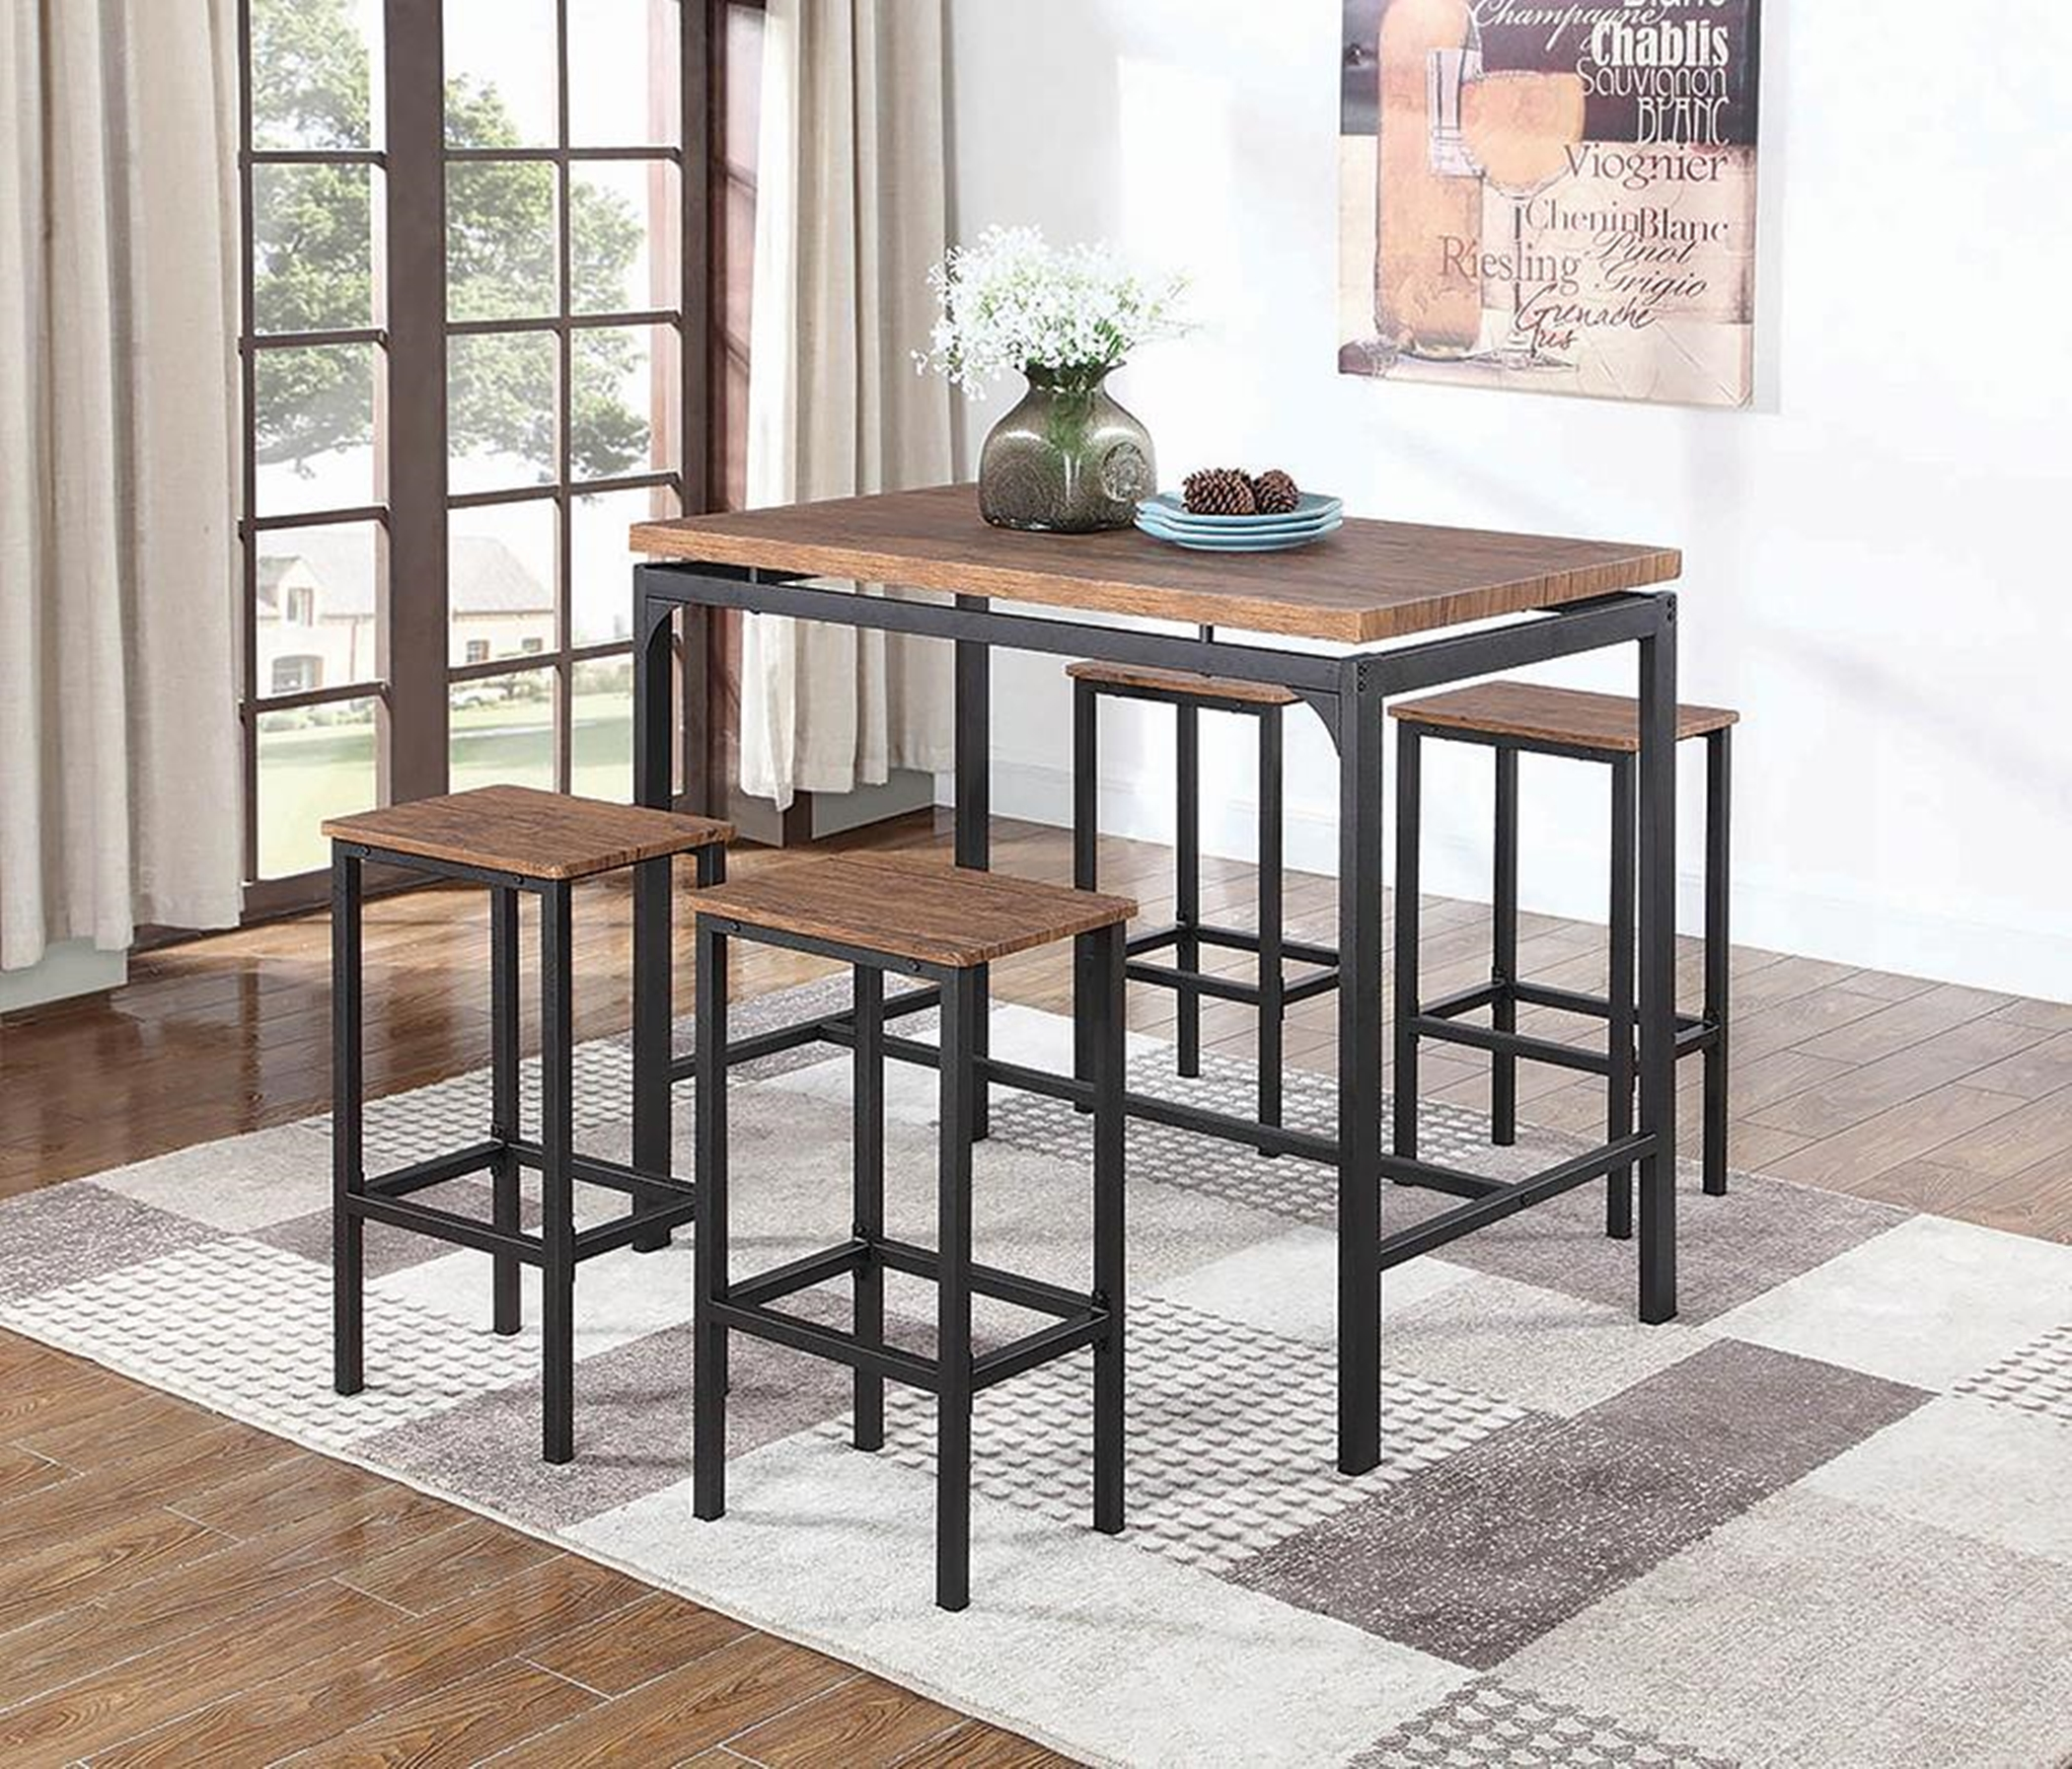 Contemporary Chestnut 5-Pc. Bar Set